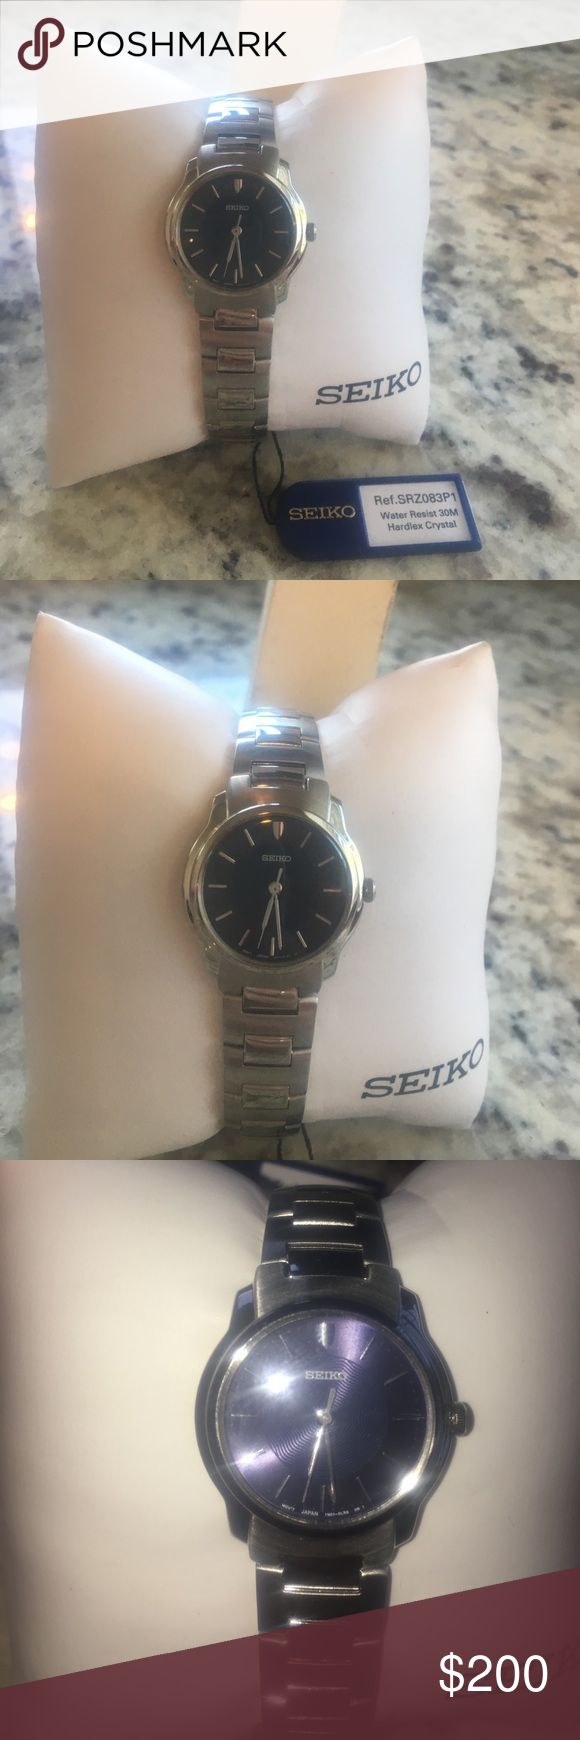 NWT Seiko Ladies Stainless Steel Watch NWT Seiko Ladies Watch.  Hardlex Crystal with a dark navy face Stainless steel, water resistant  Japanese Quartz movement  Never worn, new with tags!  Needs new battery  Matching Men's  Watch, willing to sell as a pair! Seiko Accessories Watches